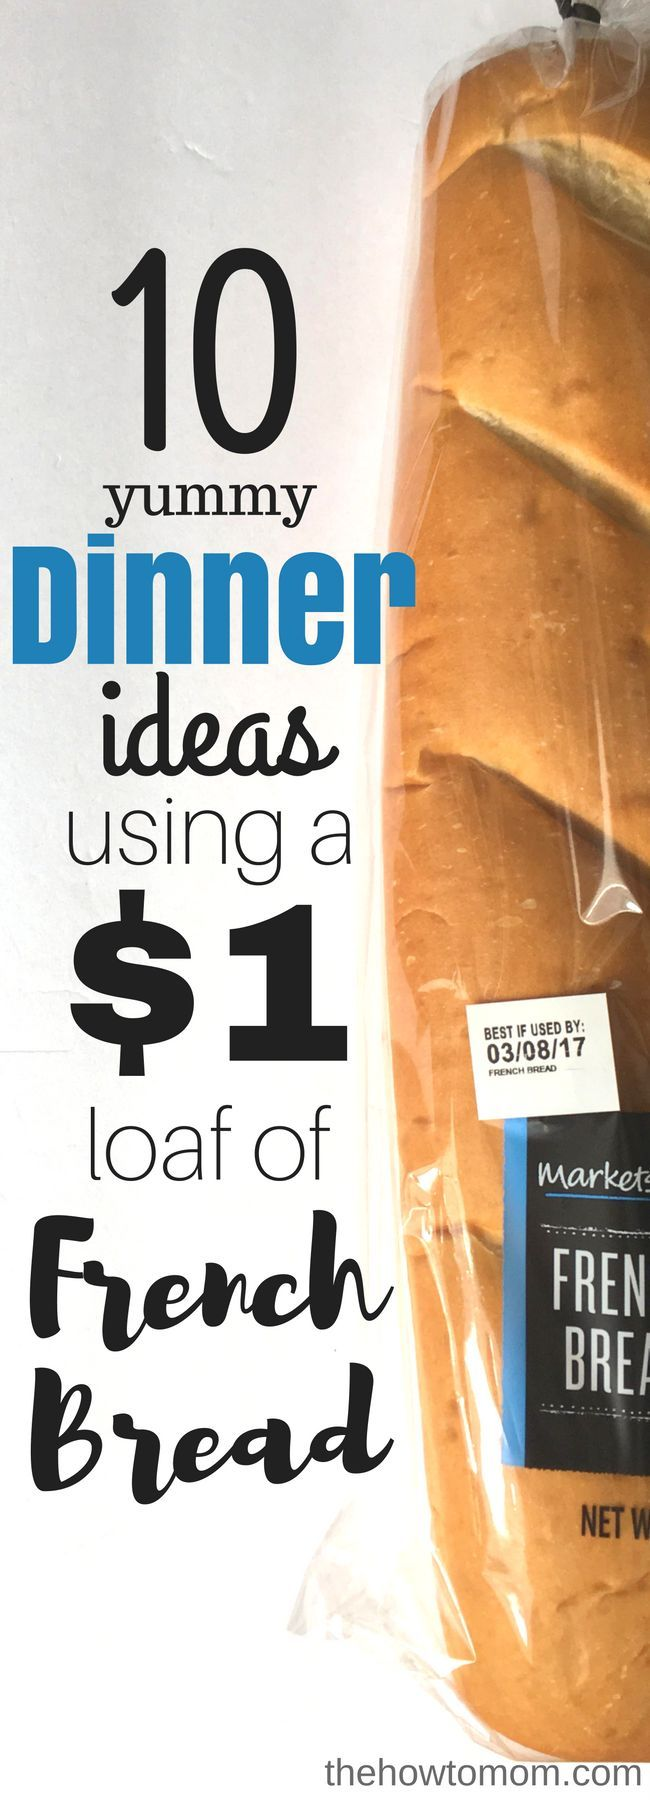 Dinner ideas from a $1 loaf of French bread